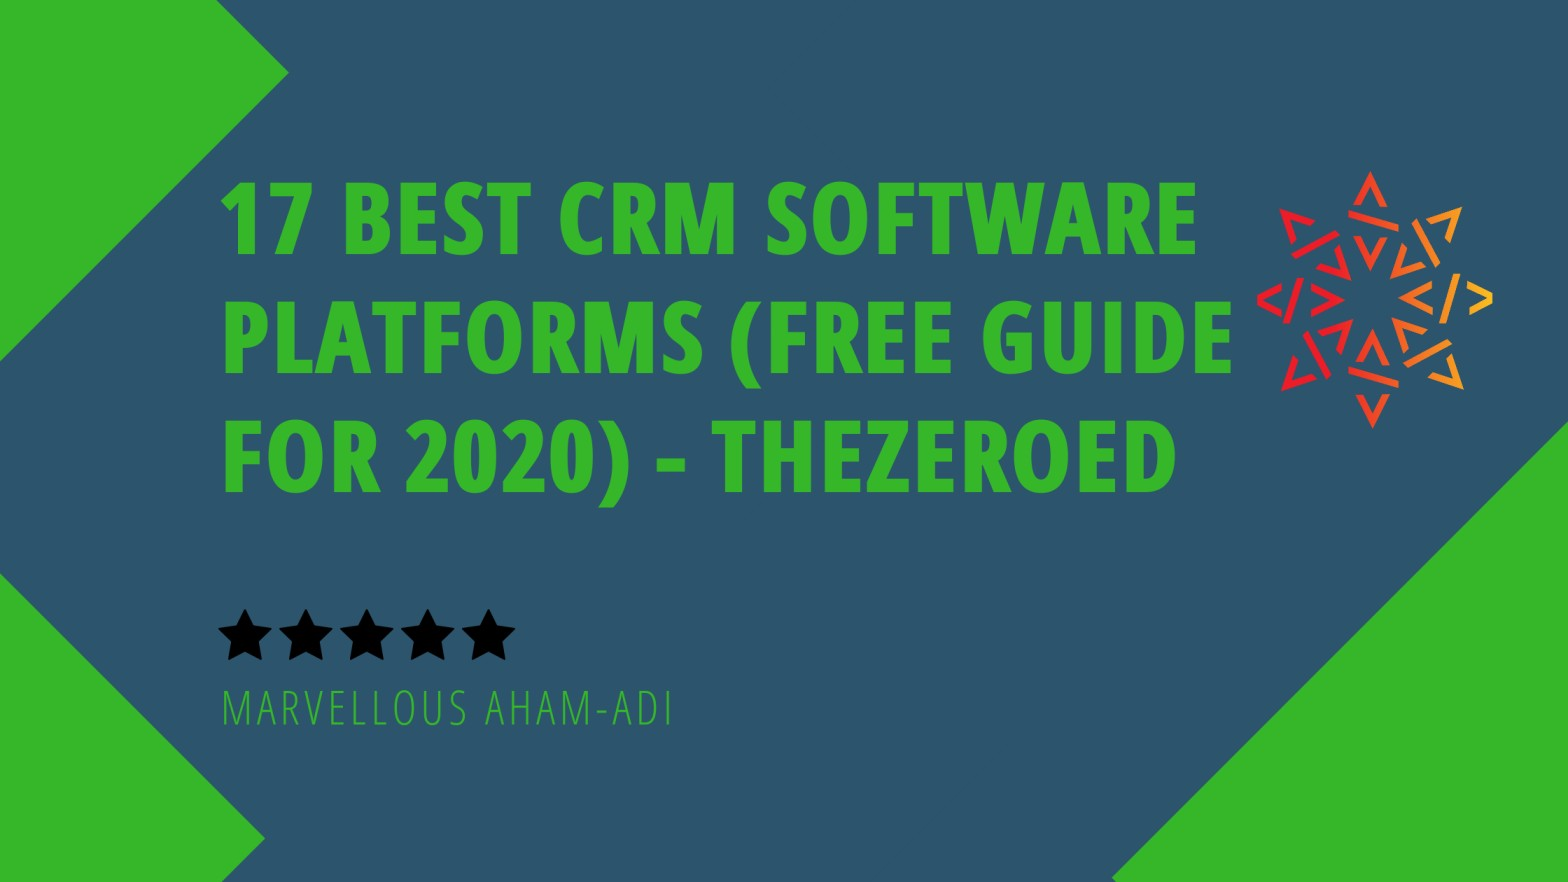 17 Best CRM Software Platforms (Free Guide for 2020)